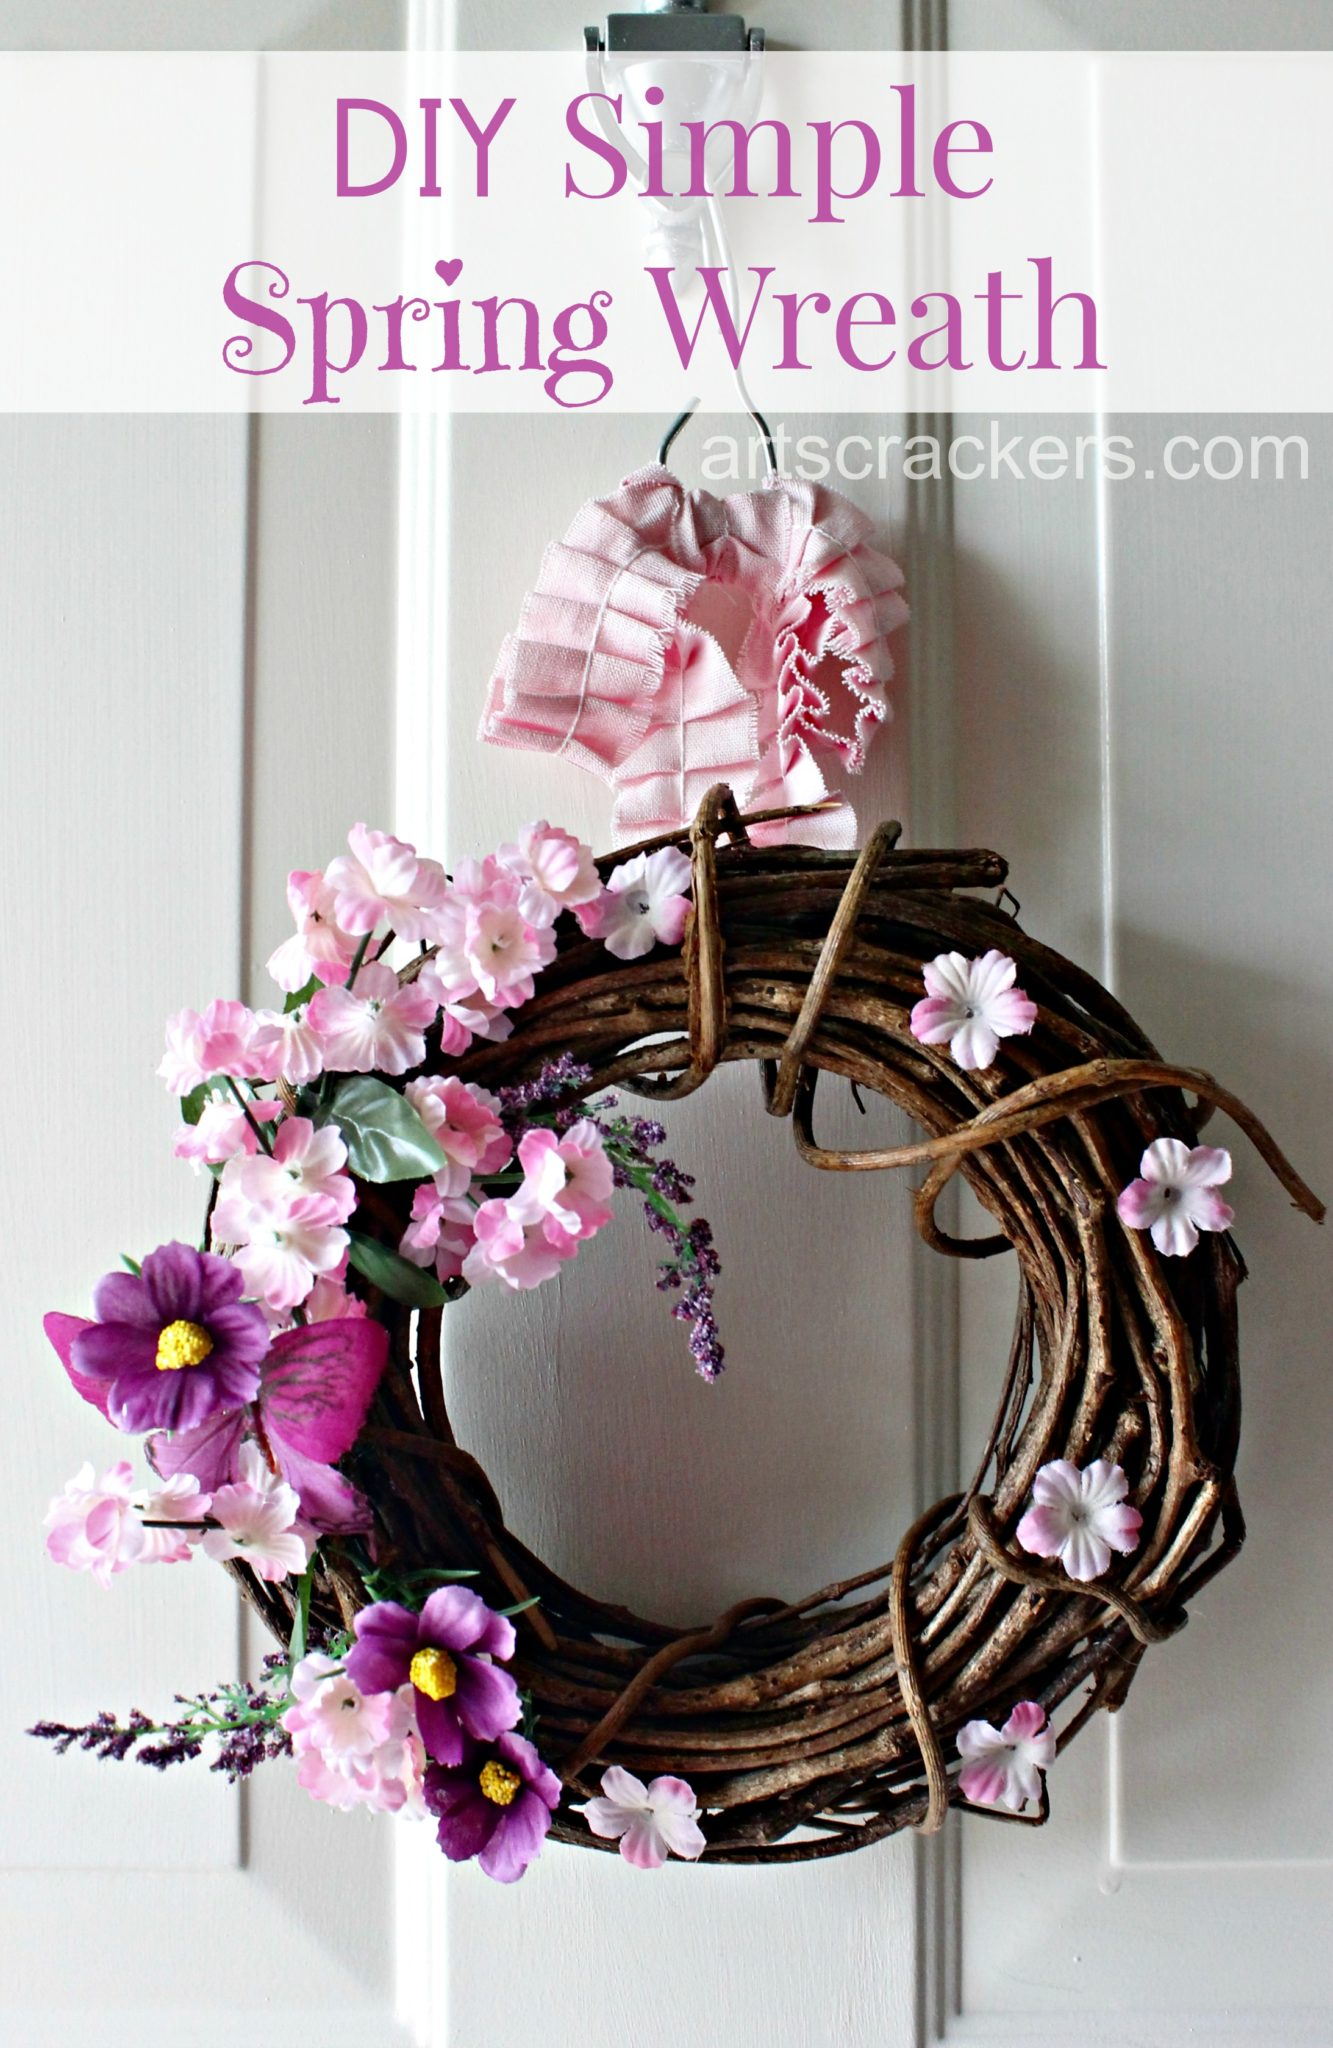 Simple Spring Twig Wreath DIY Tutorial. Click the picture to view the tutorial.